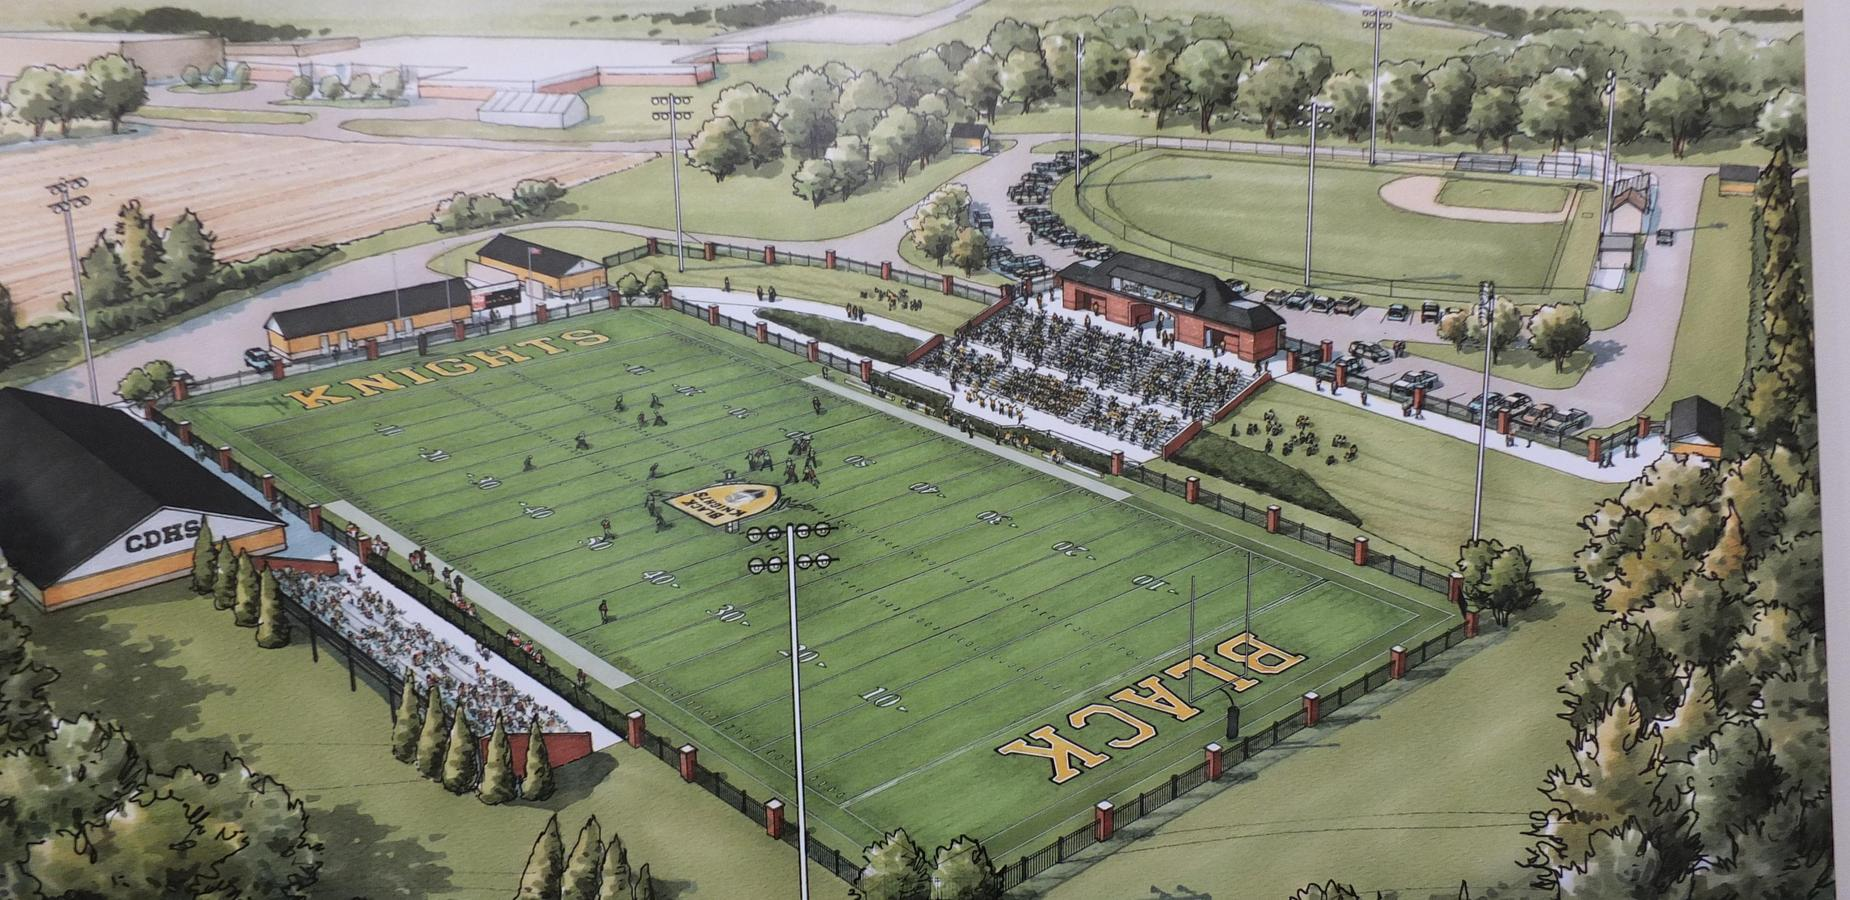 Drawing of plans for future CDHS football field and baseball field